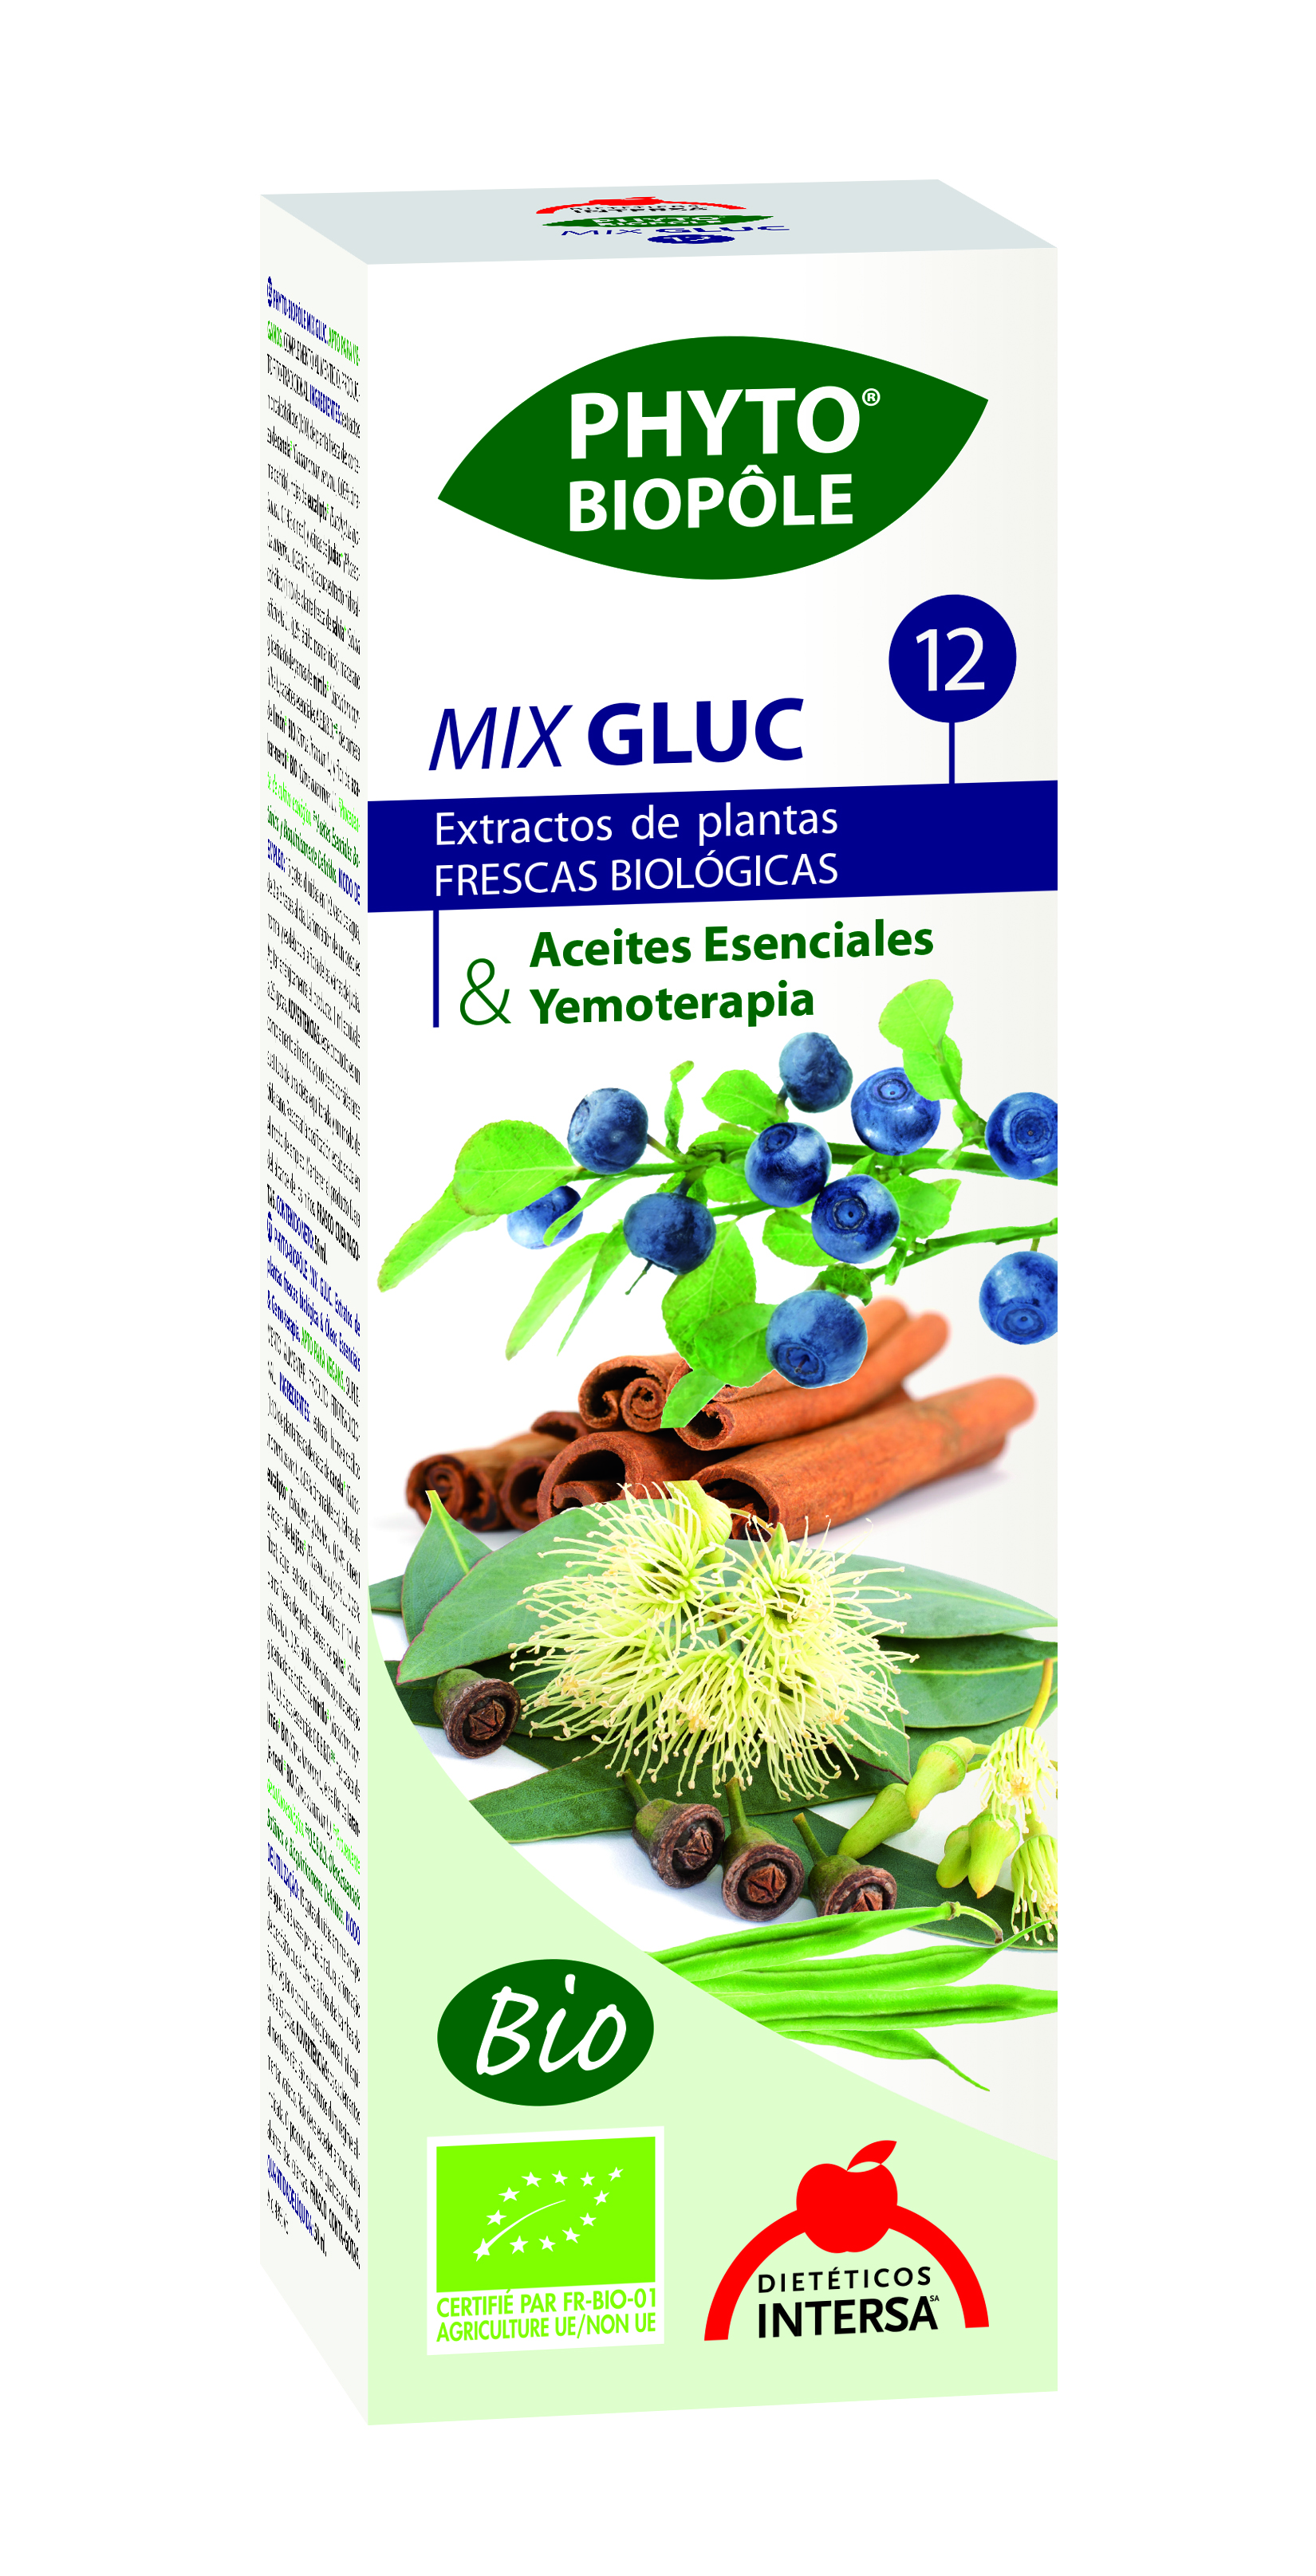 PHYTOBIOPOLE MIX GLUC 12 50 ML